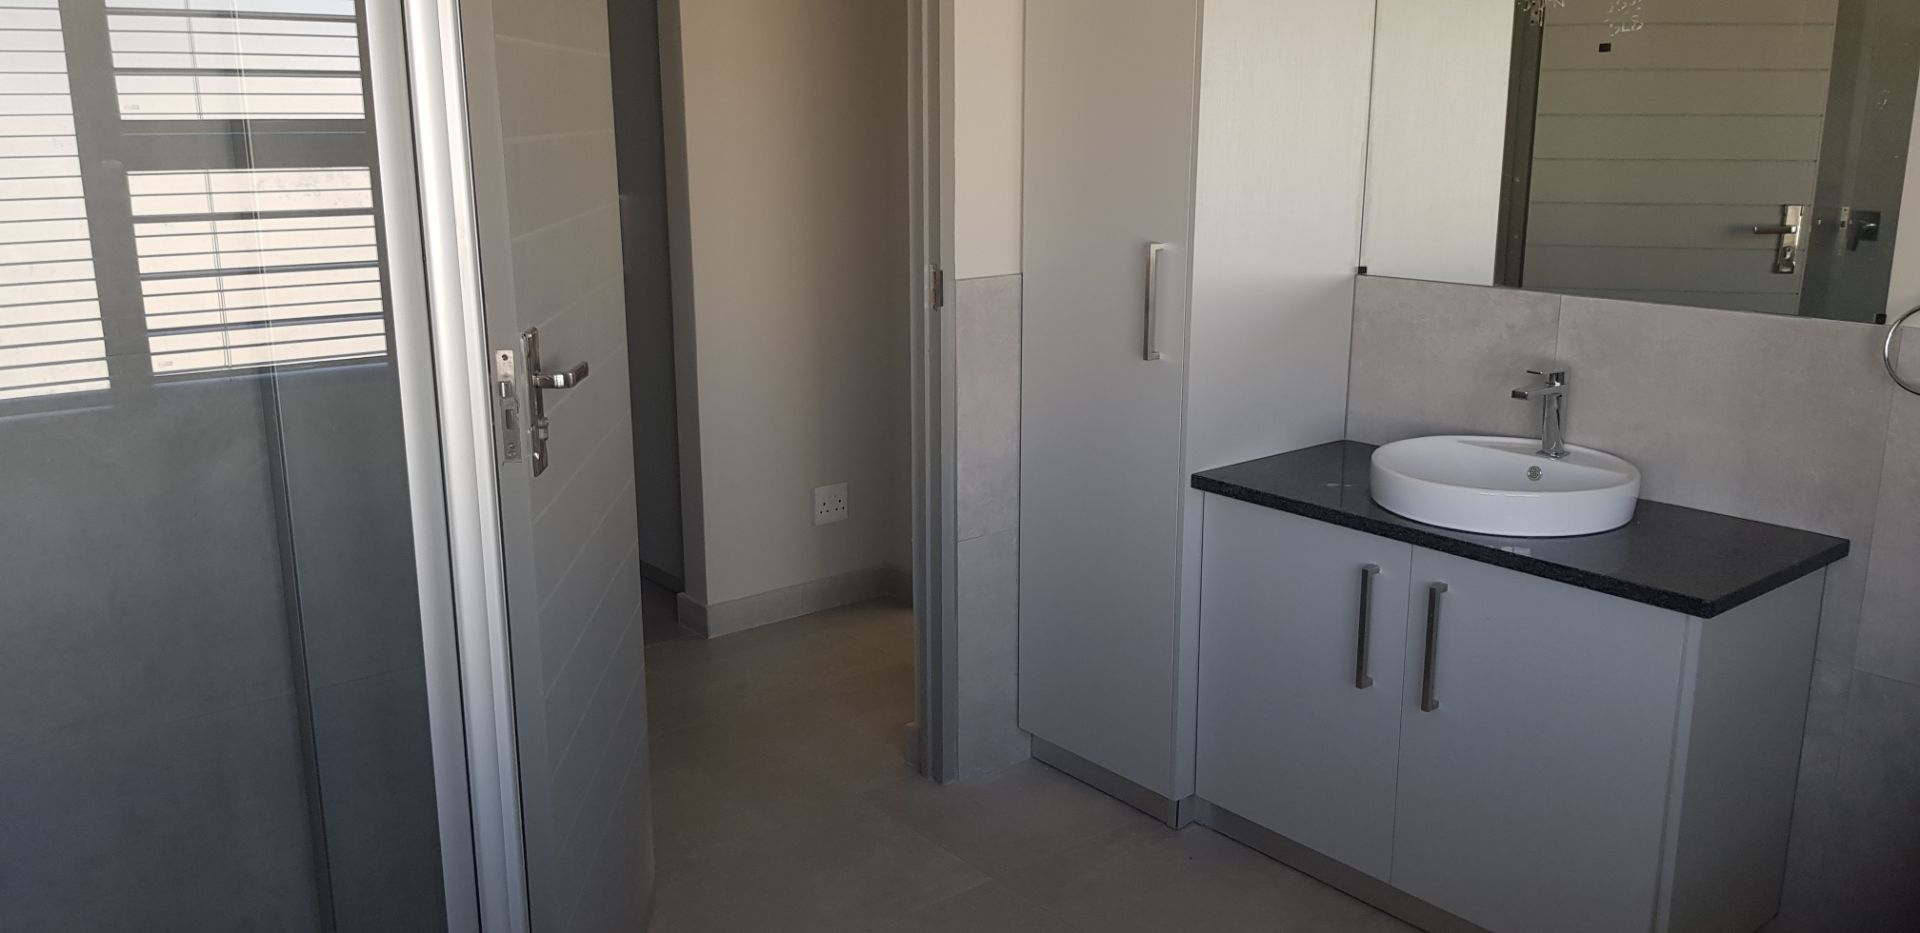 House in Lifestyle Estate - 20190712_111541.jpg